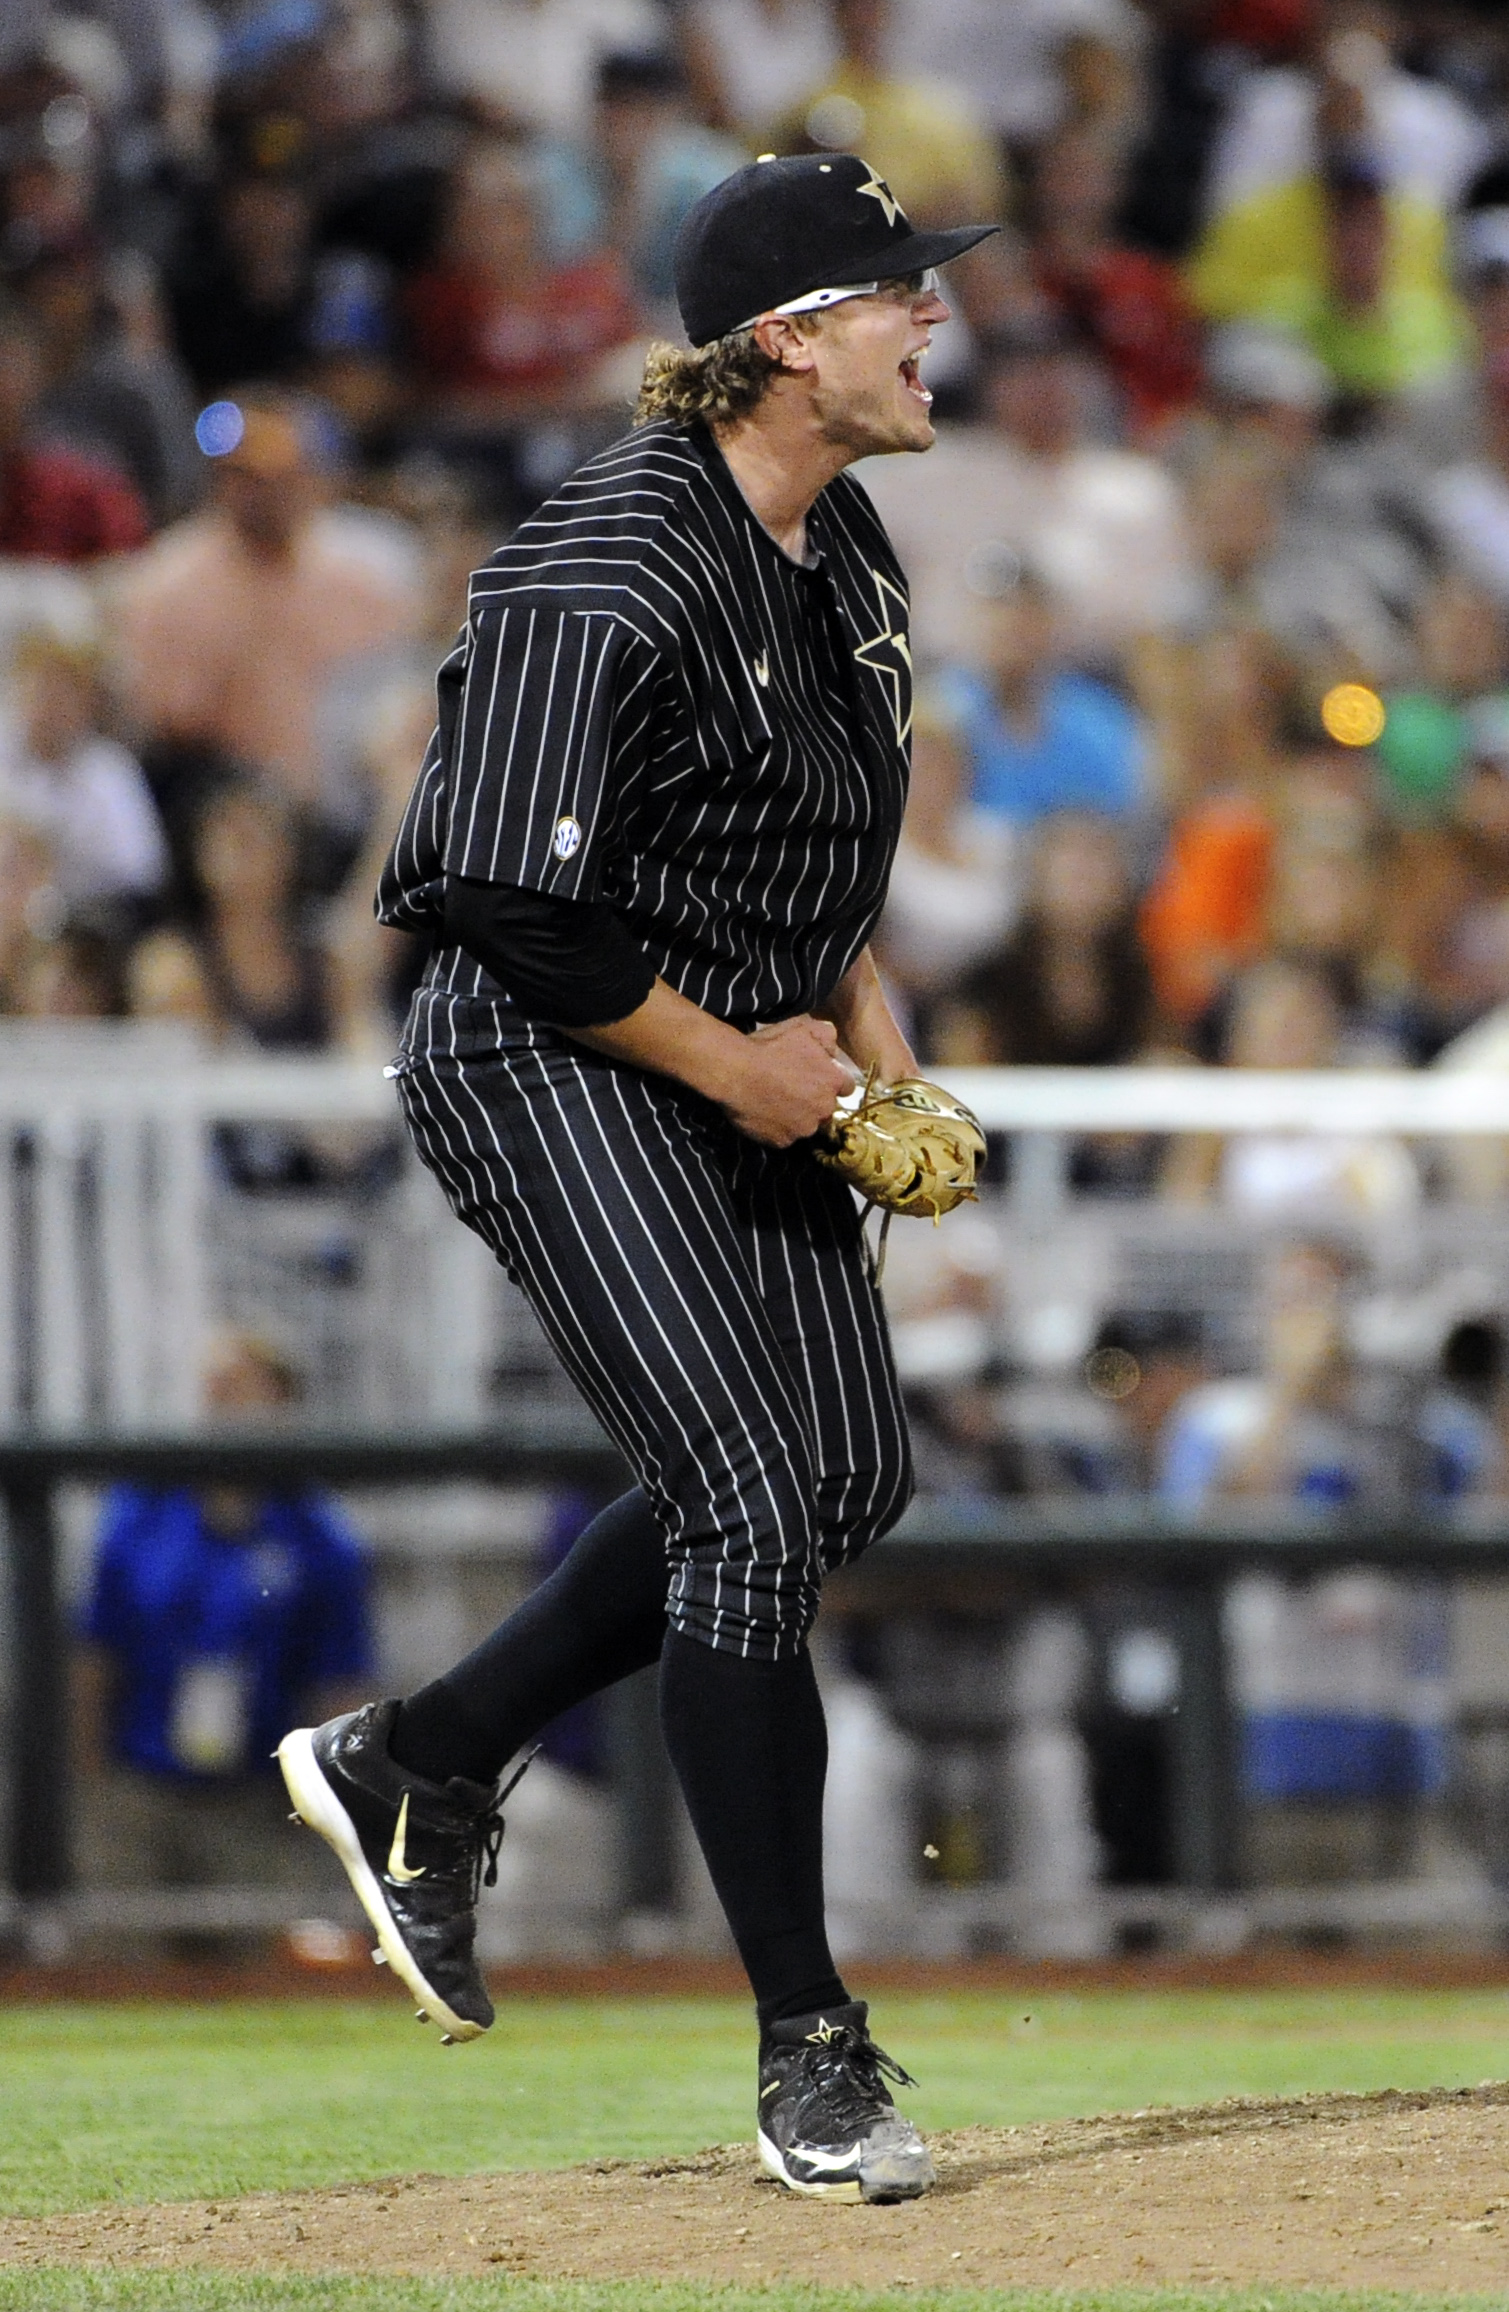 Carson Fulmer, screaming germs to death.